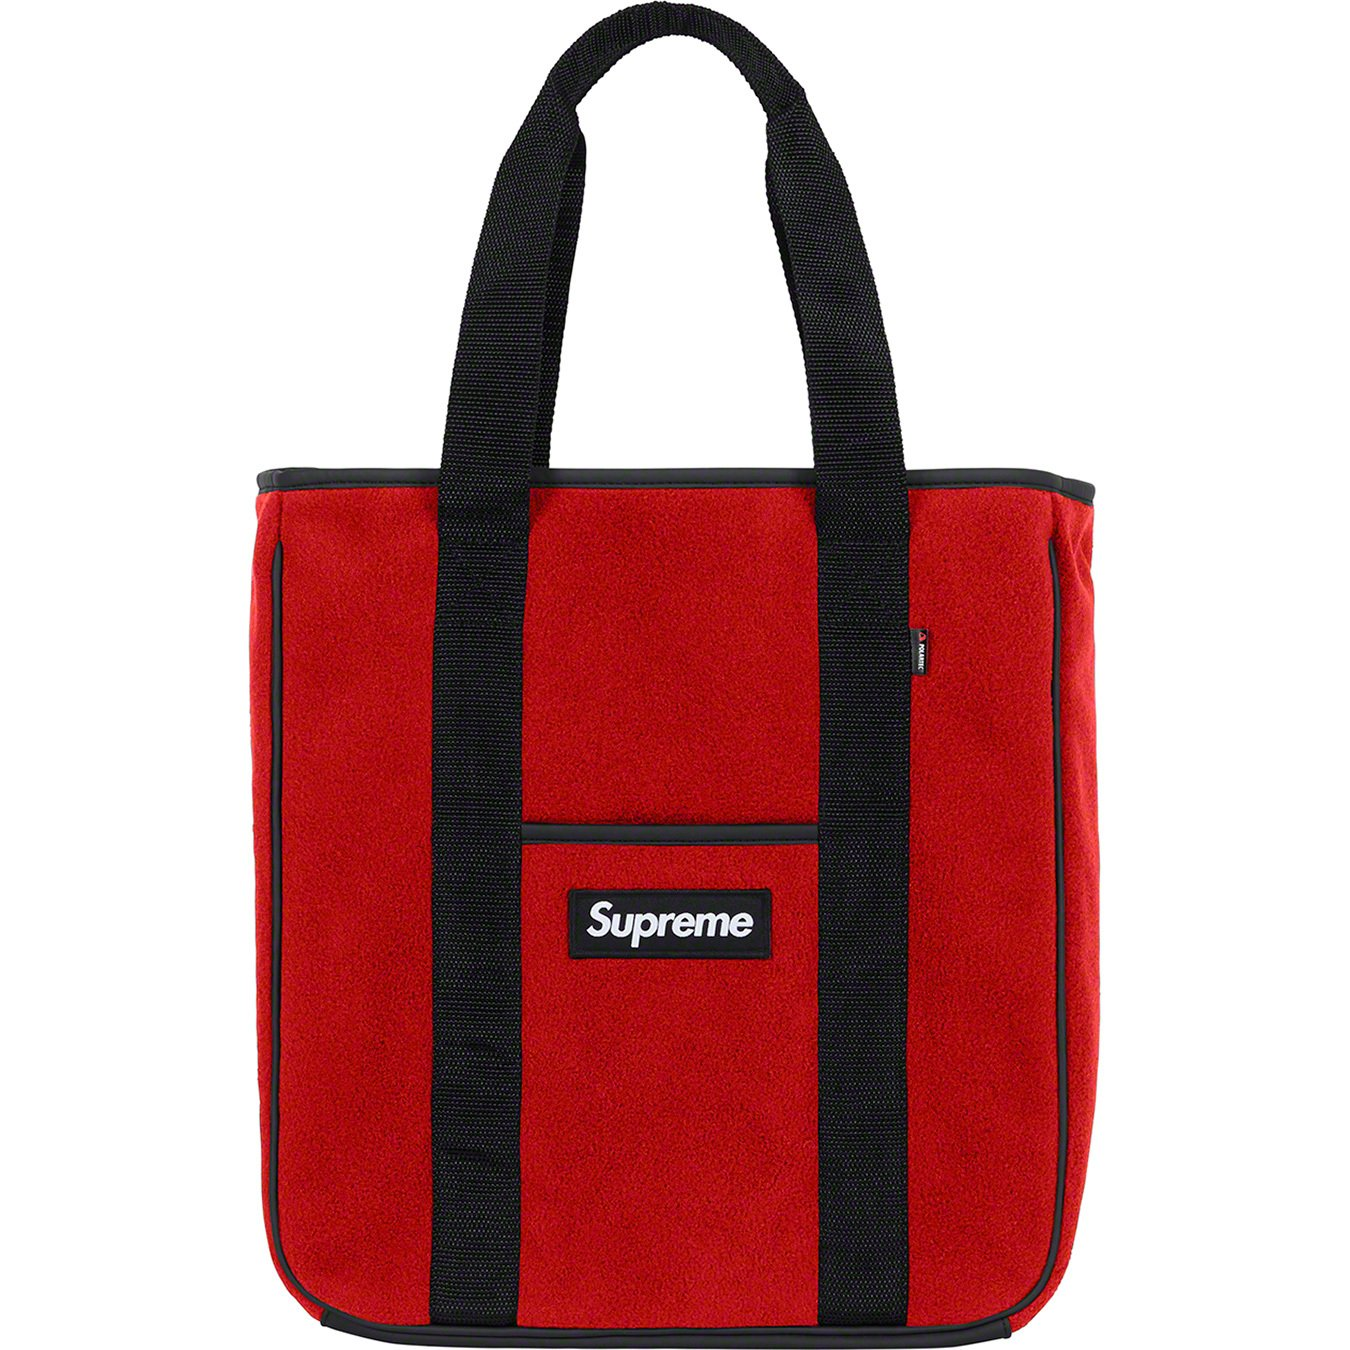 supreme-18aw-fall-winter-polartec-tote